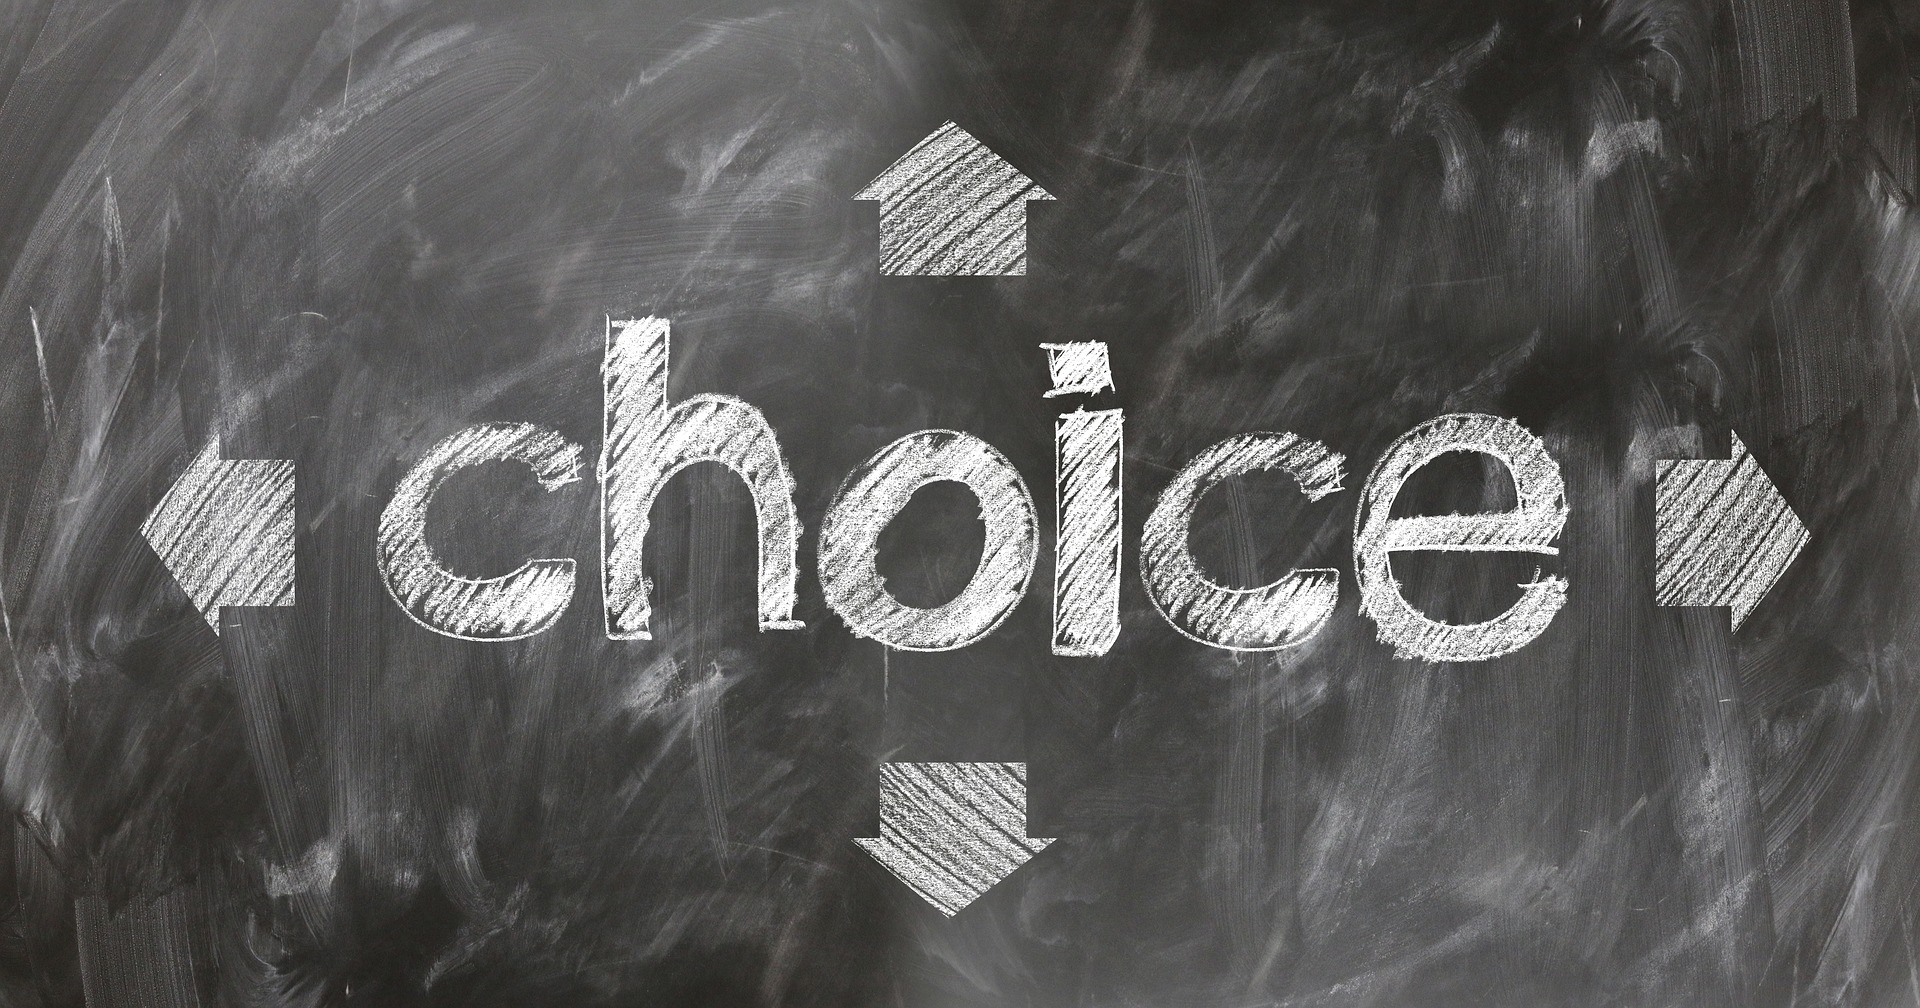 choice-options for the future